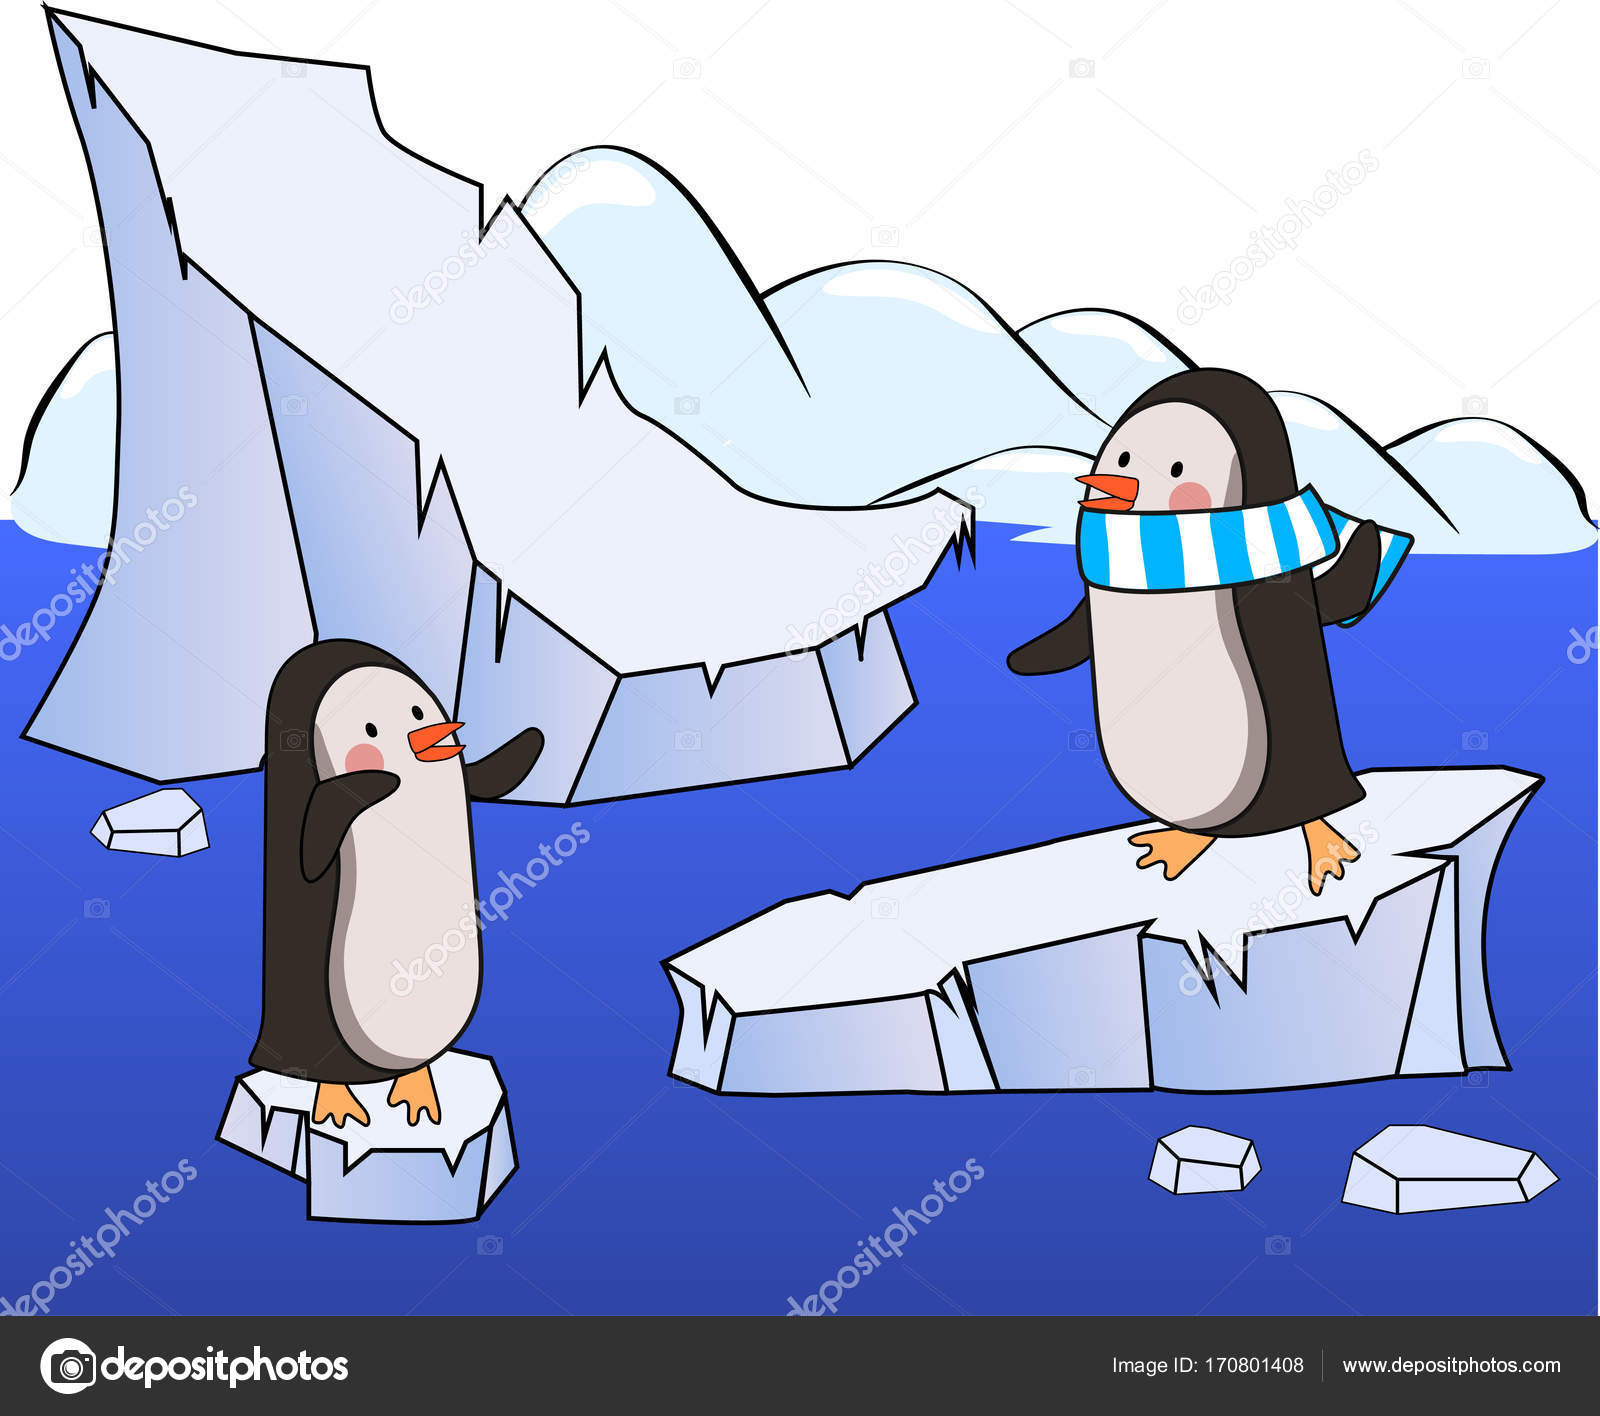 Two Cartoon Penguins On An Ice Floes Looking And Waving Each Other